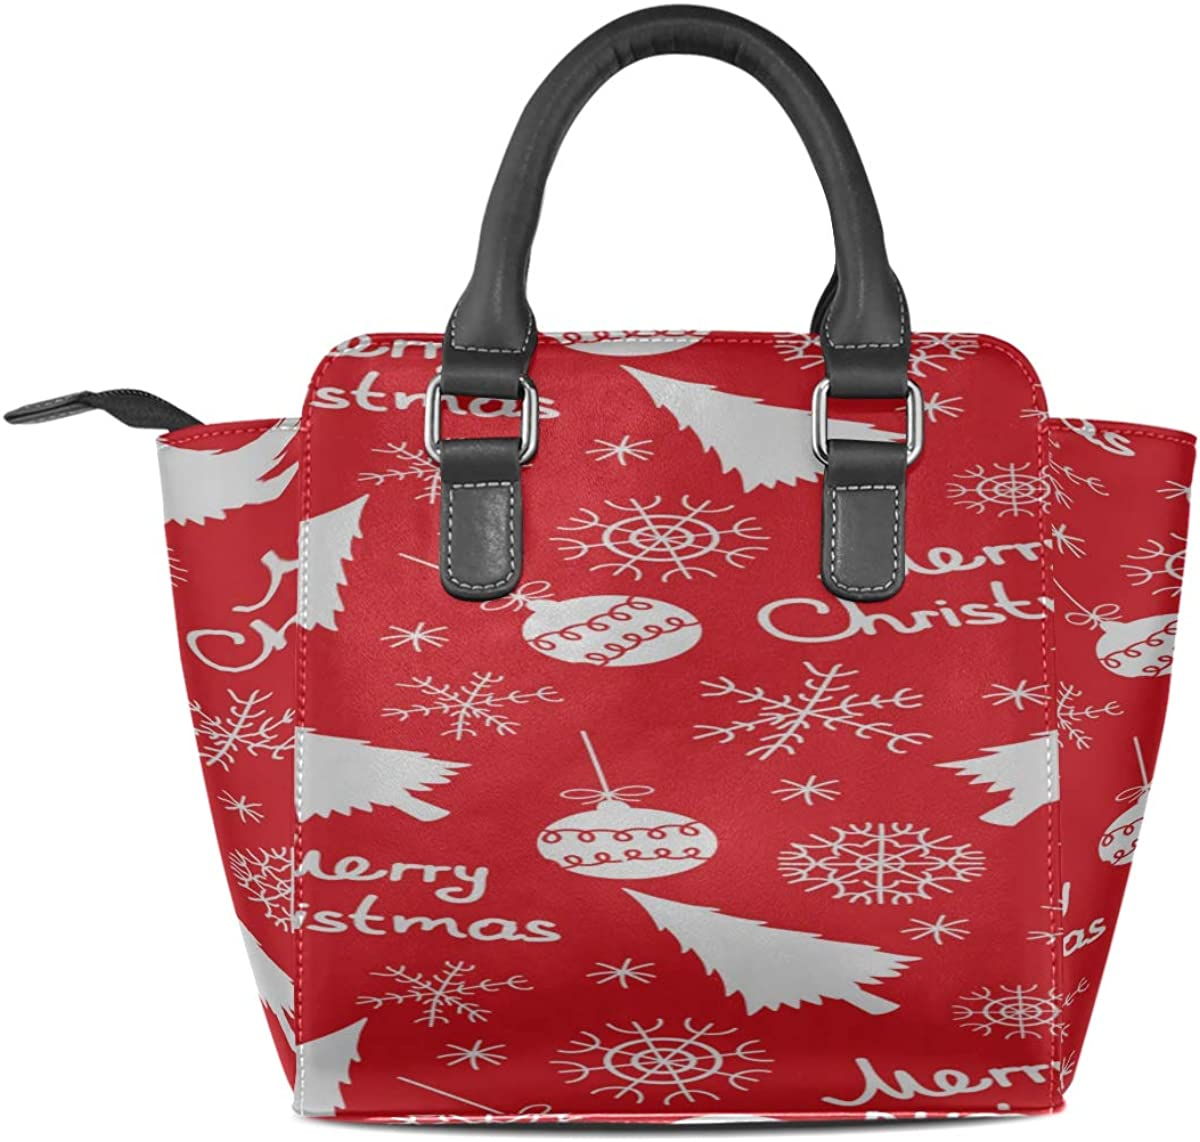 Fashion Tote Bag For Women Of Christmas Elements On A Red Custom Handle Purses Pu Leather Rivet Portable Fashion Printing Waterproof With Zipper Handbags For Teens